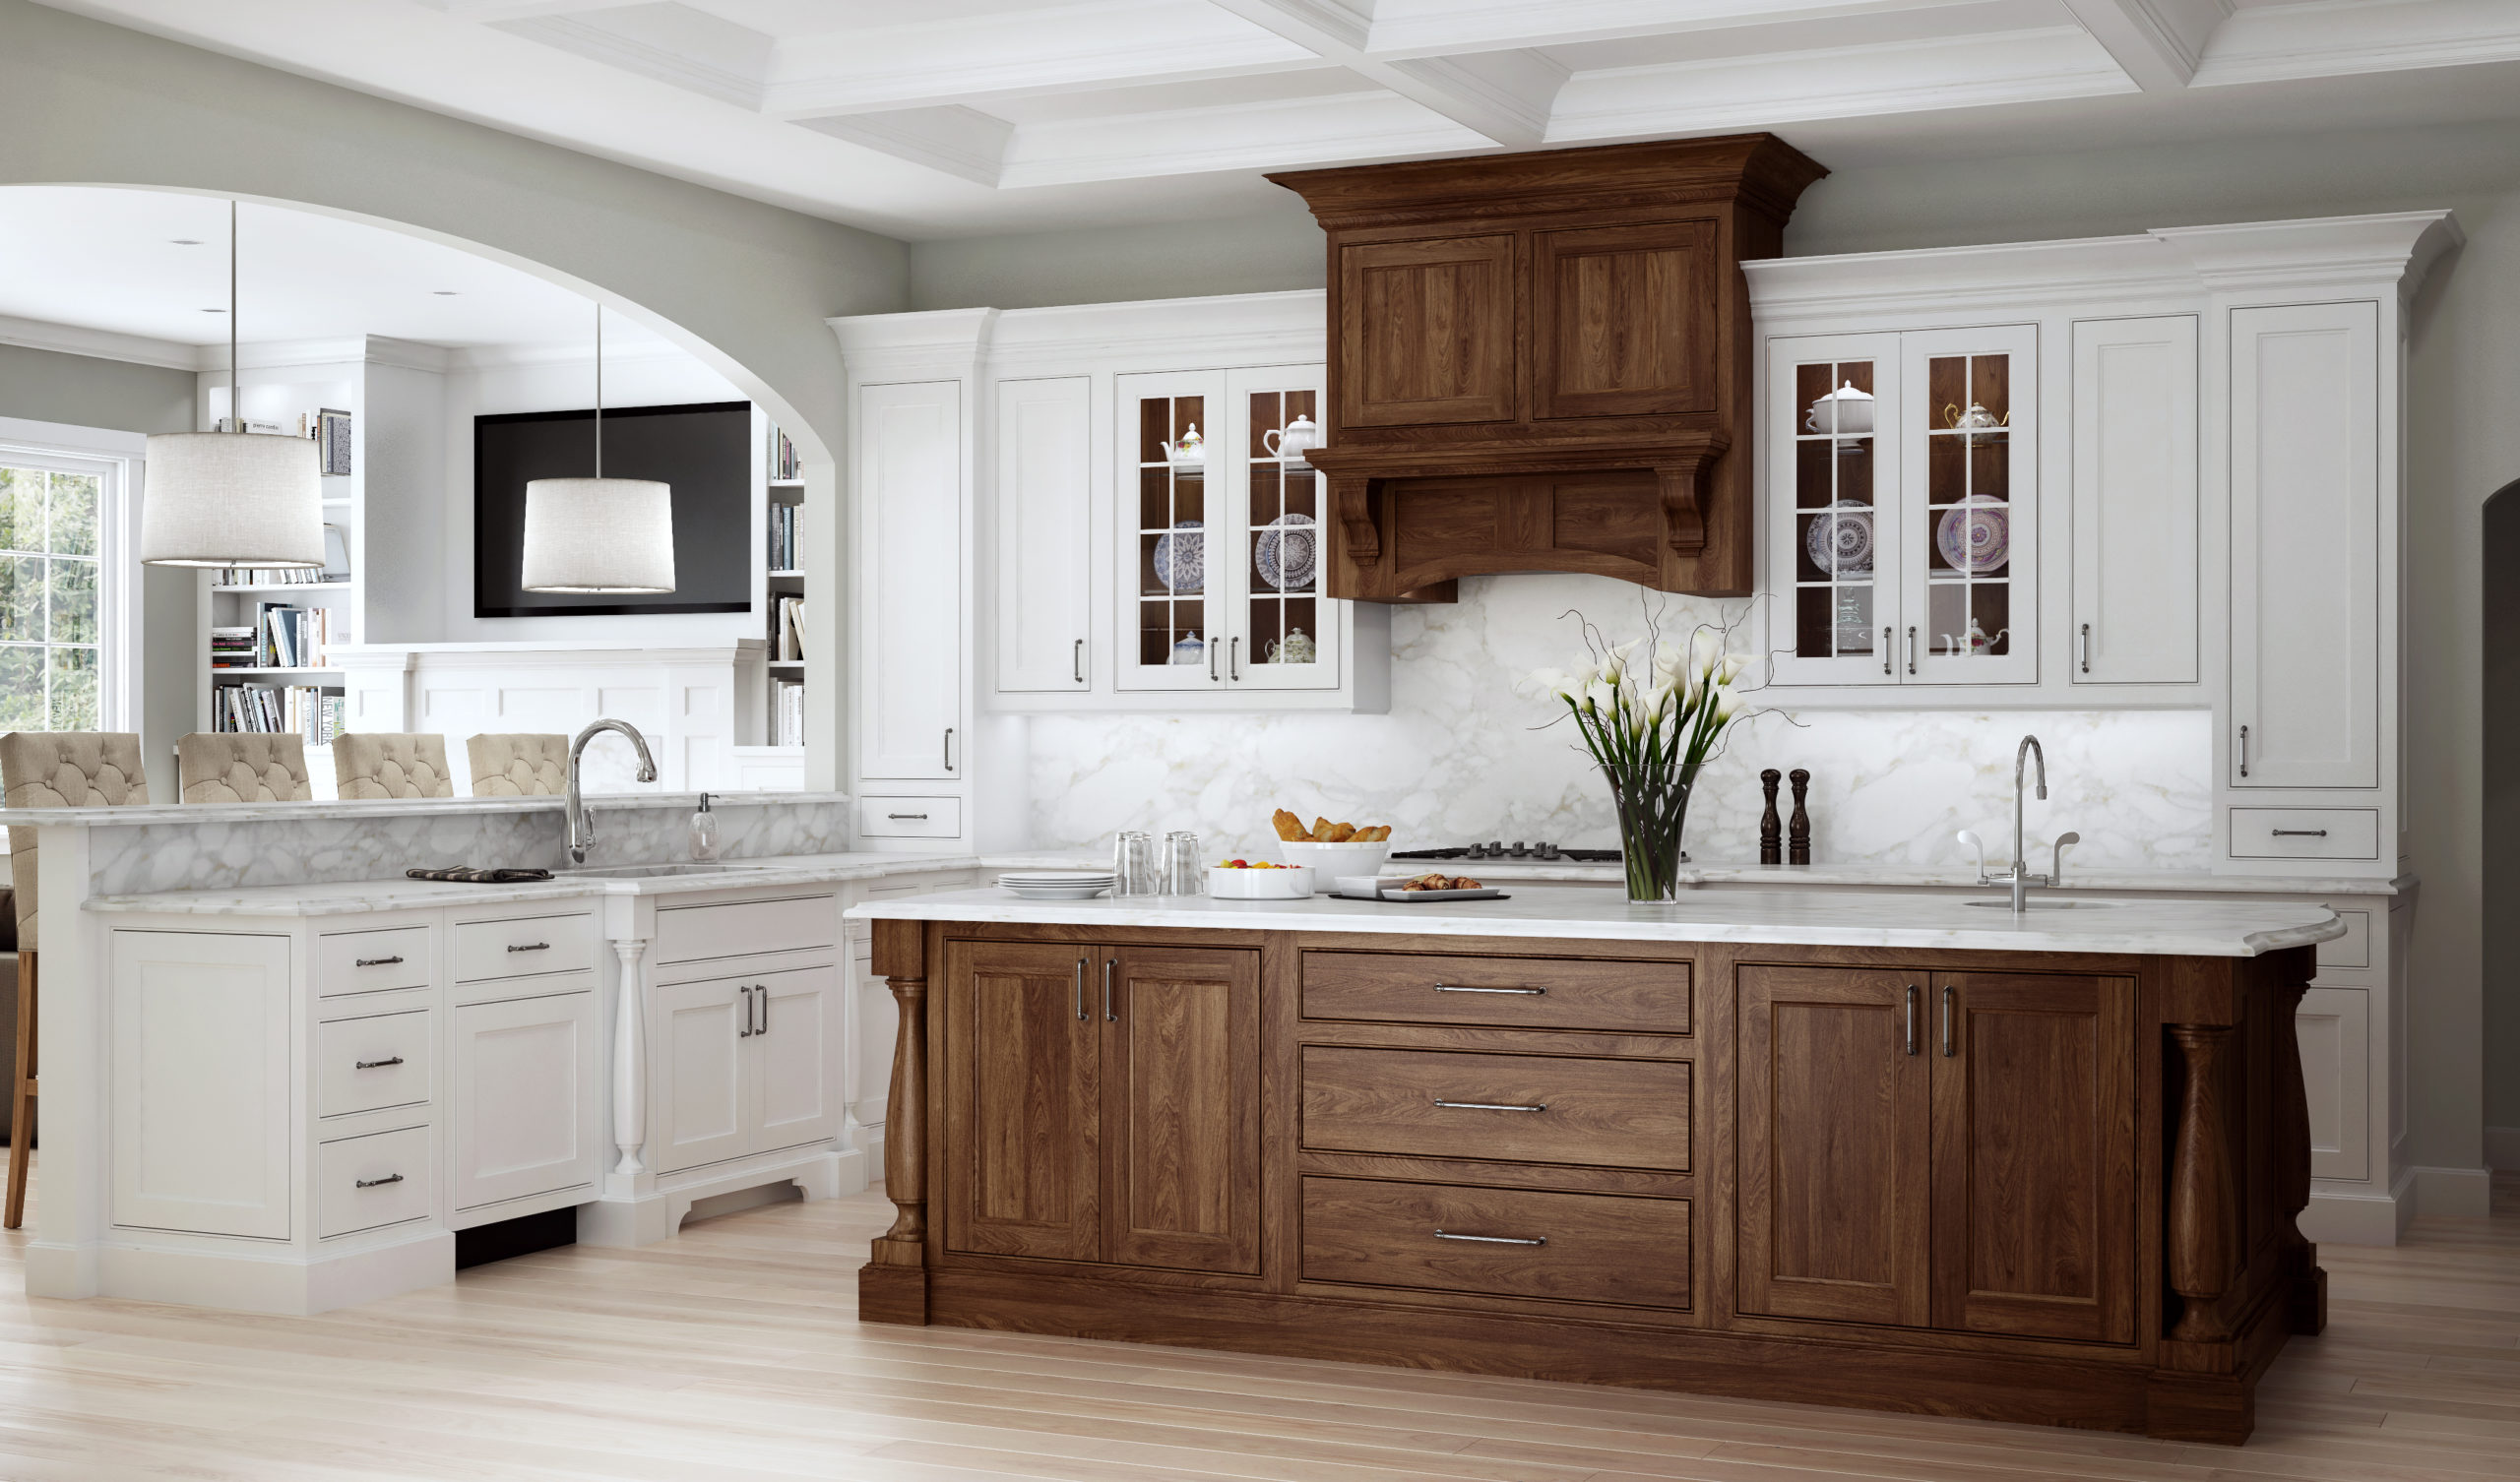 Home Improvement Remodeling Cary NC Kitchen Bathroom Renovations